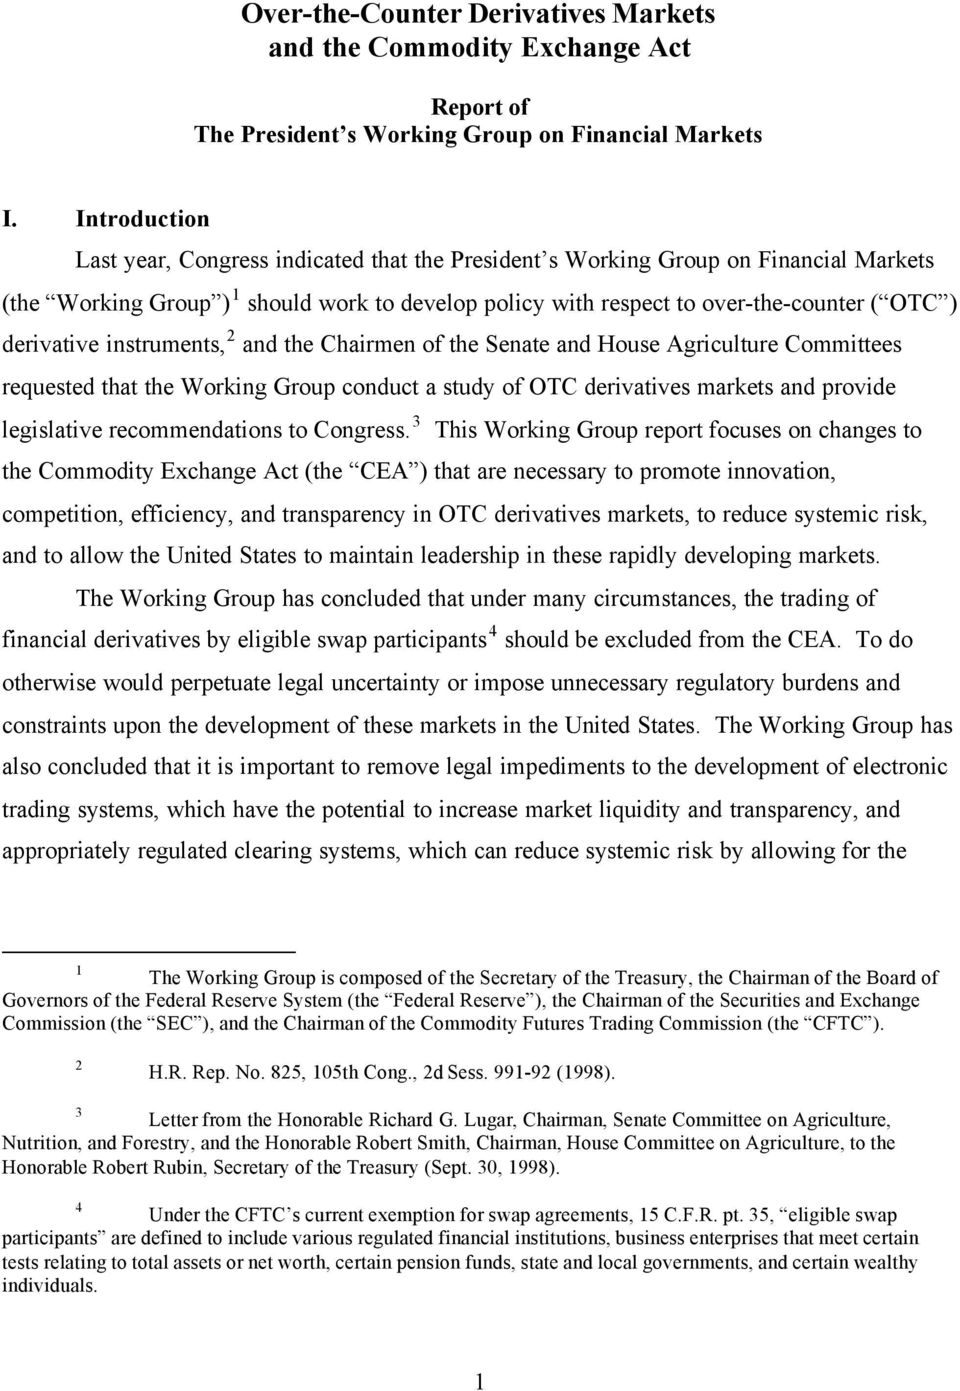 derivative instruments, 2 and the Chairmen of the Senate and House Agriculture Committees requested that the Working Group conduct a study of OTC derivatives markets and provide legislative